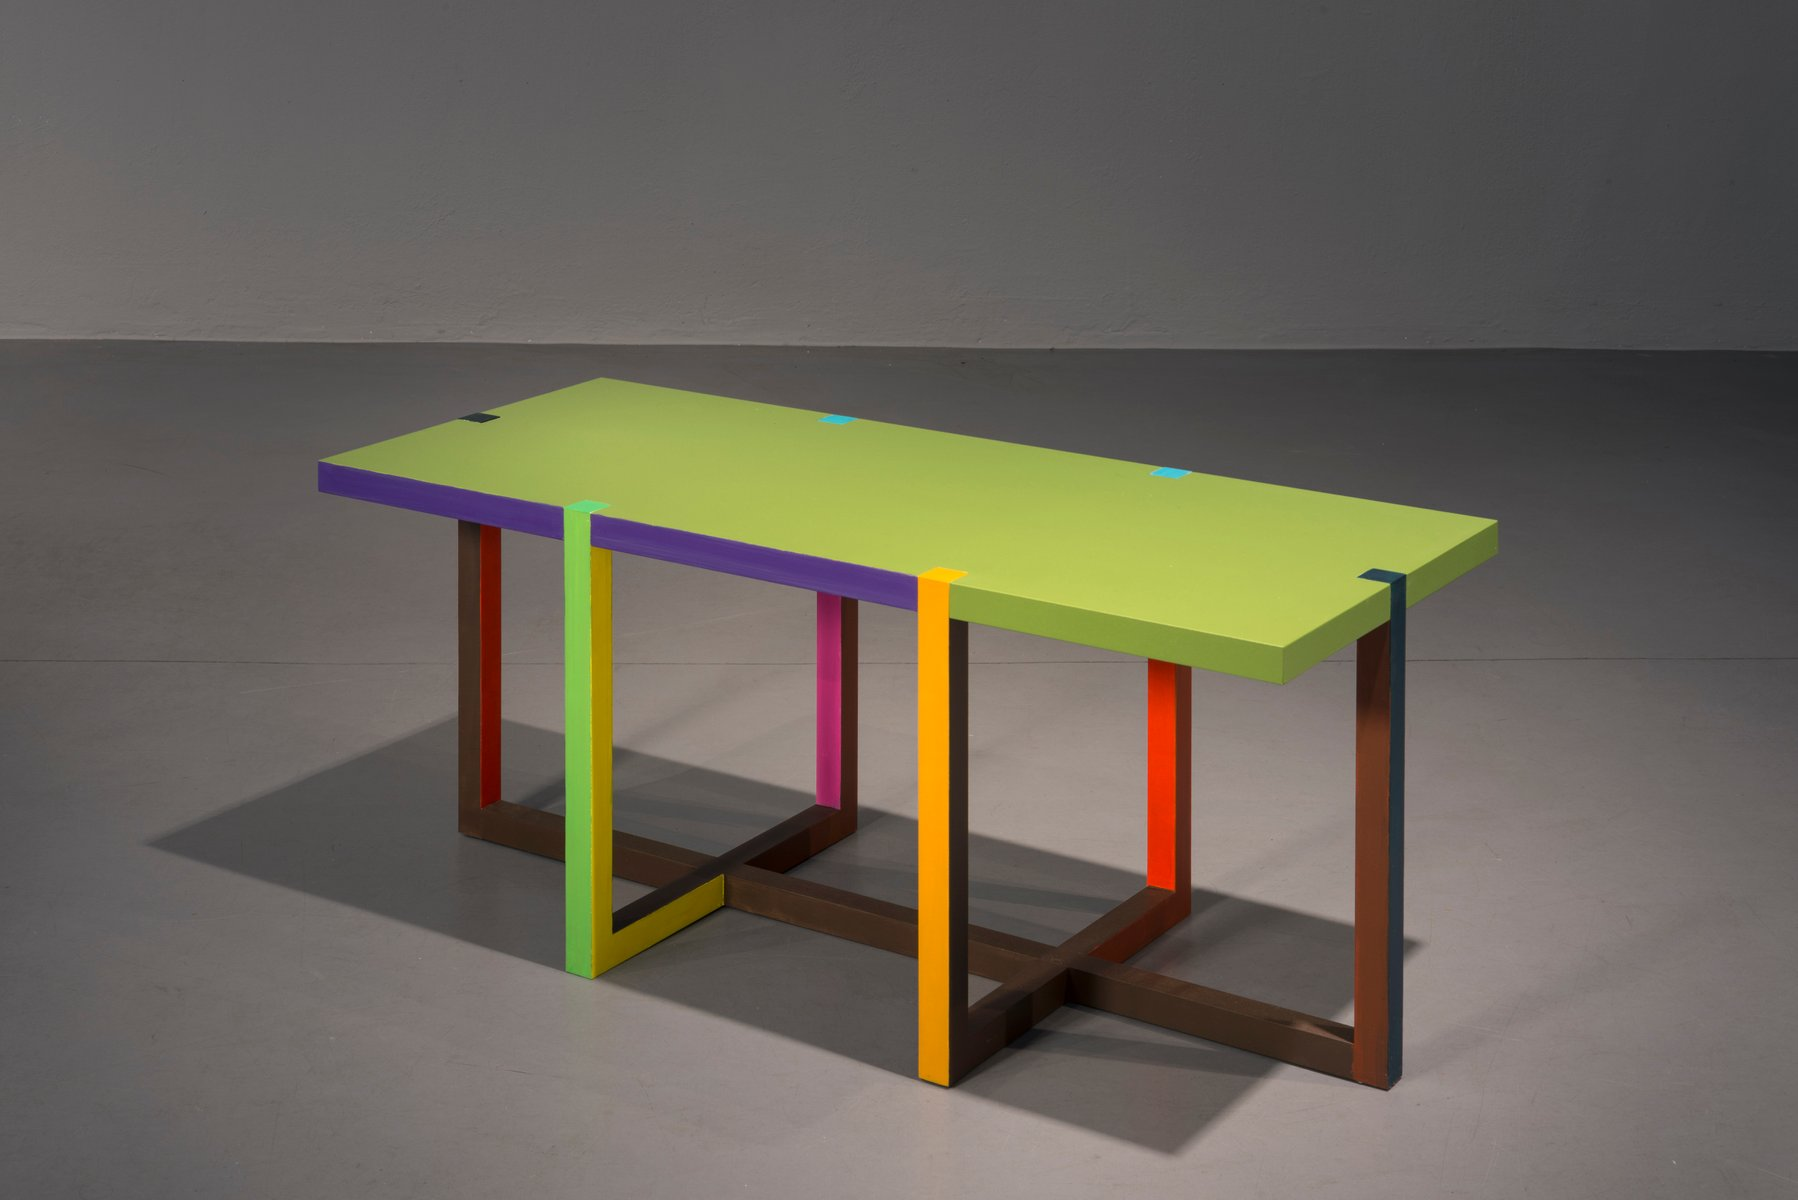 Rally y side table by martin holzapfel 2017 for sale at for Table 00 martin szekely